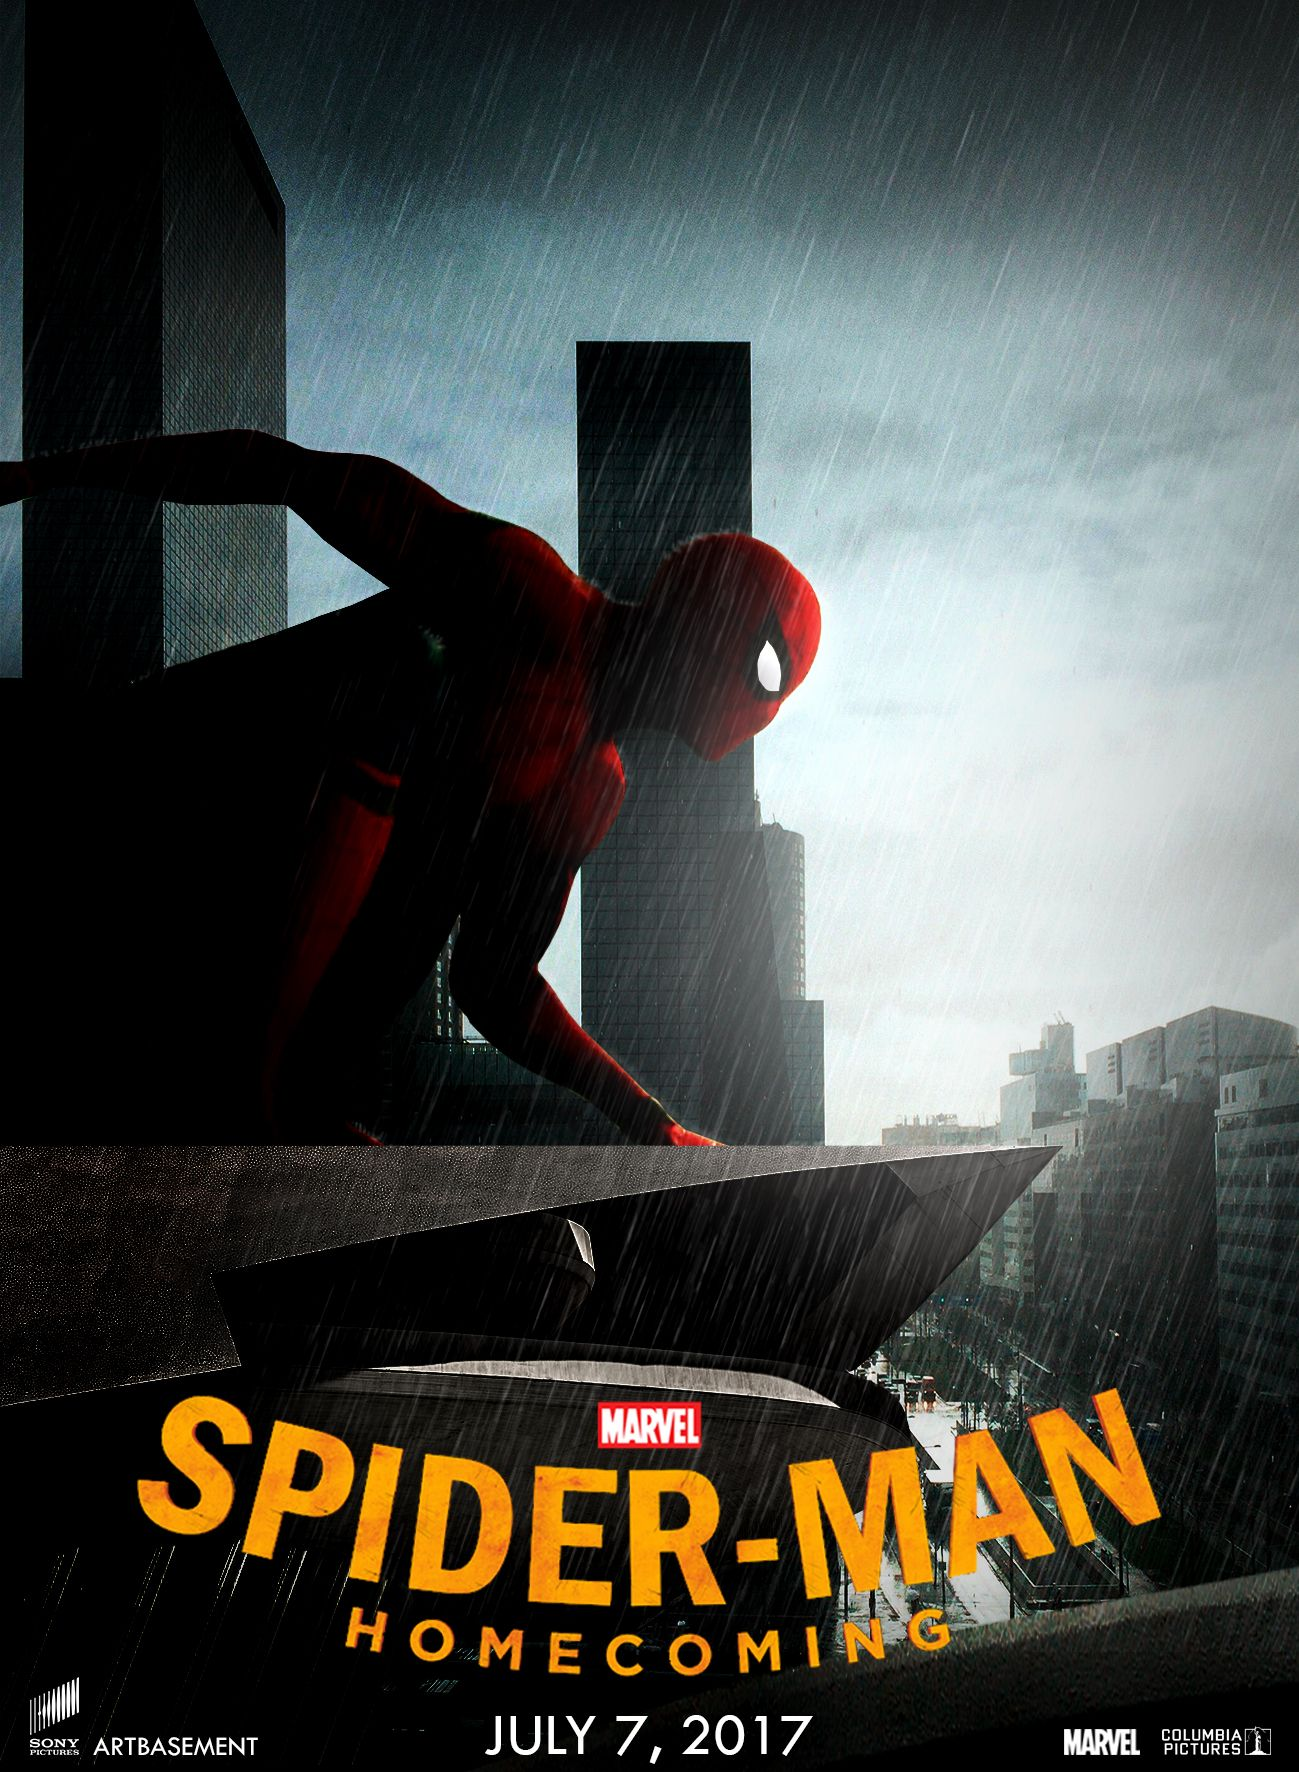 Free online poster design and download - Watch Spider Man Homecoming 2017 Free Online Movie